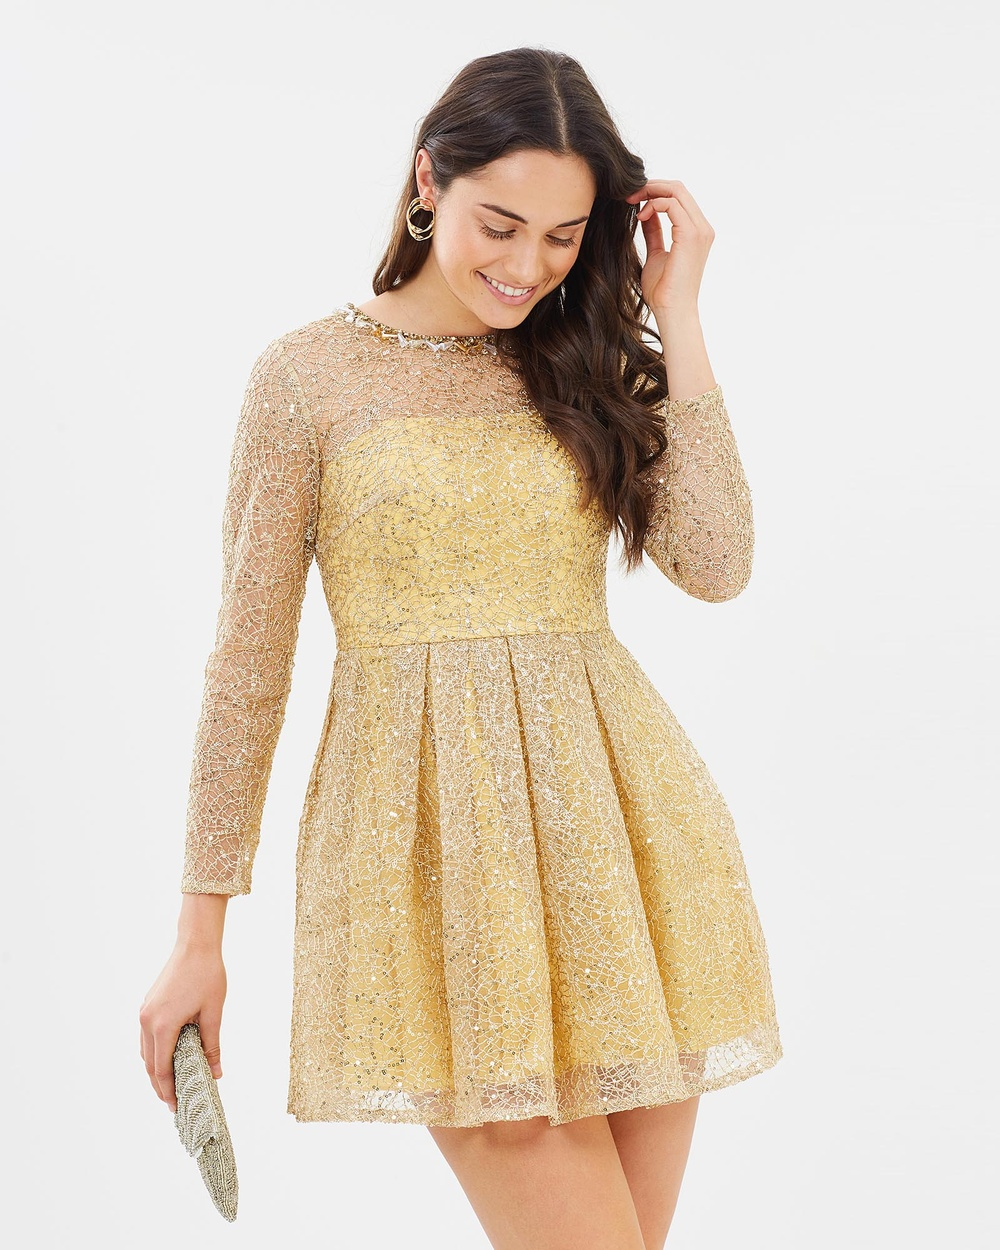 ROXCIIS Spidergold Cocktail Dress Dresses Gold Spidergold Cocktail Dress